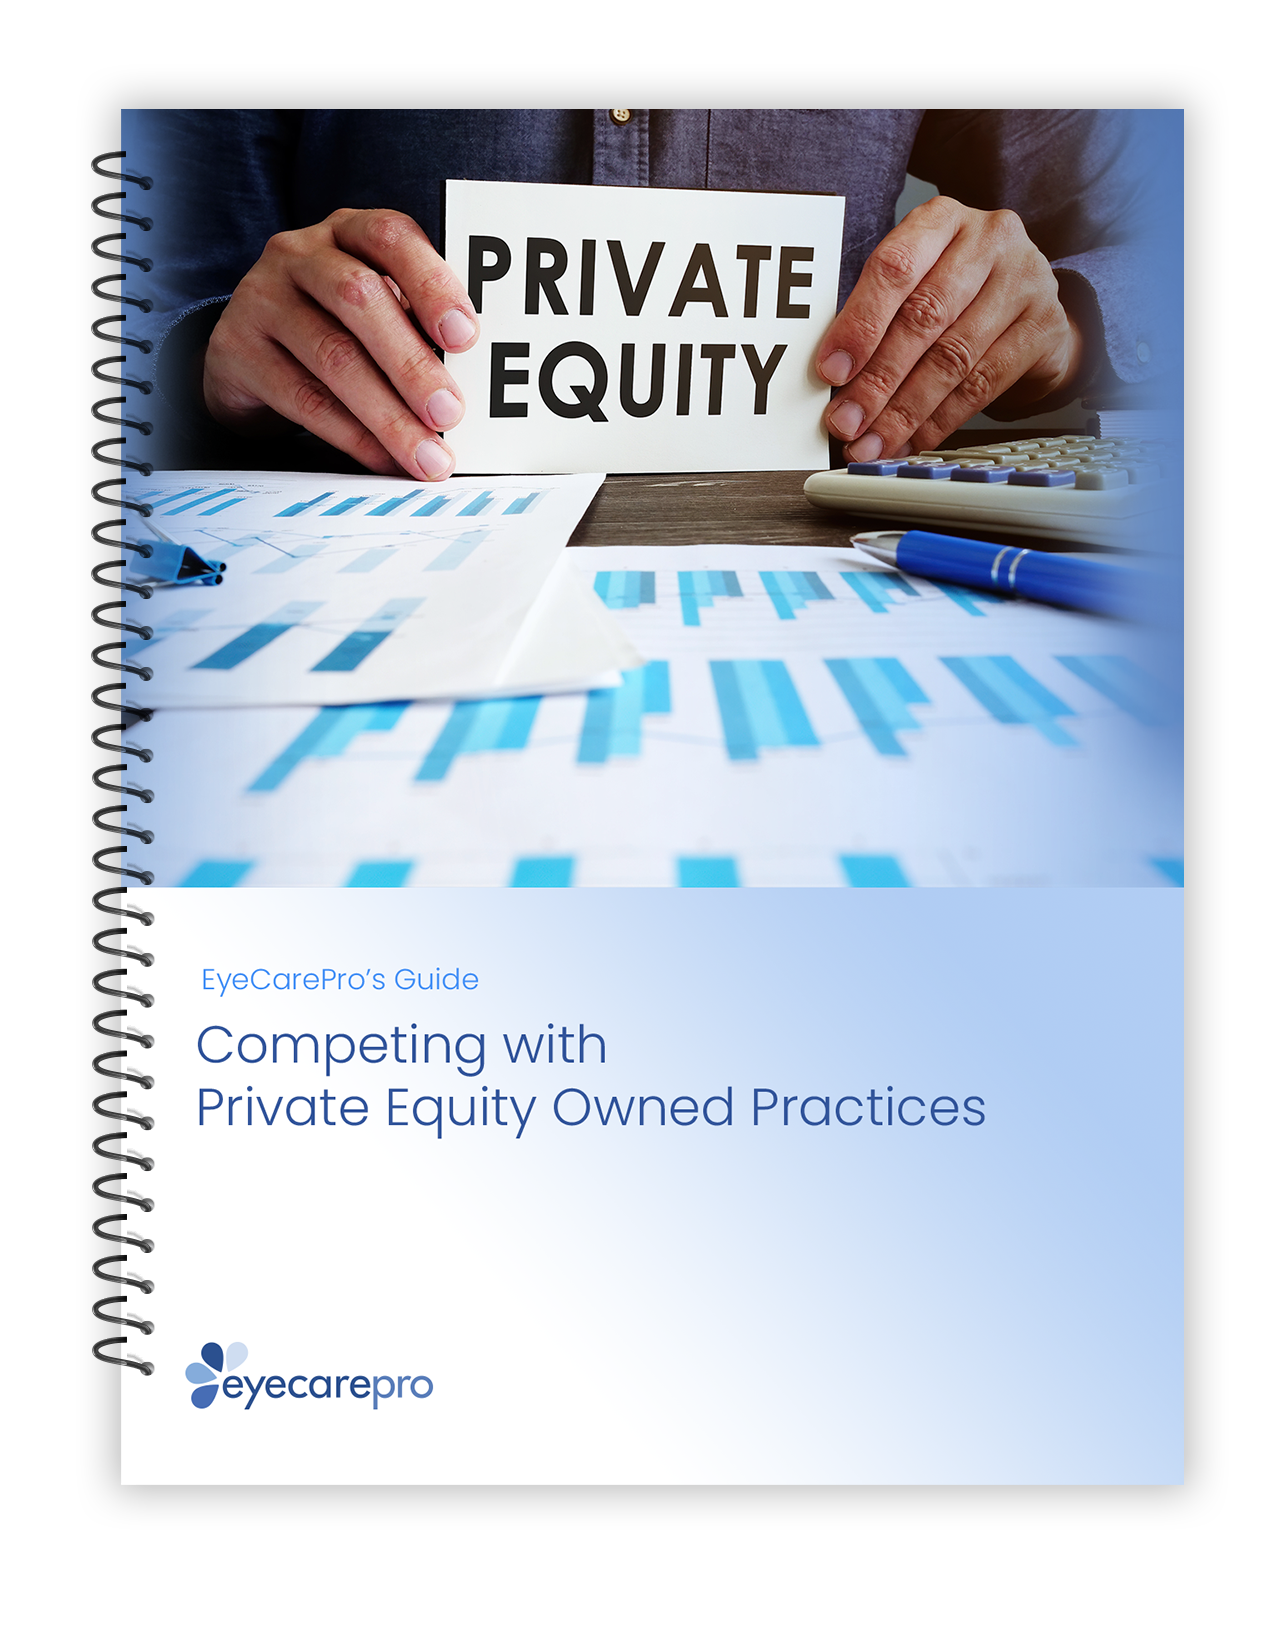 ebook-Copmeteing-with-private-Equity